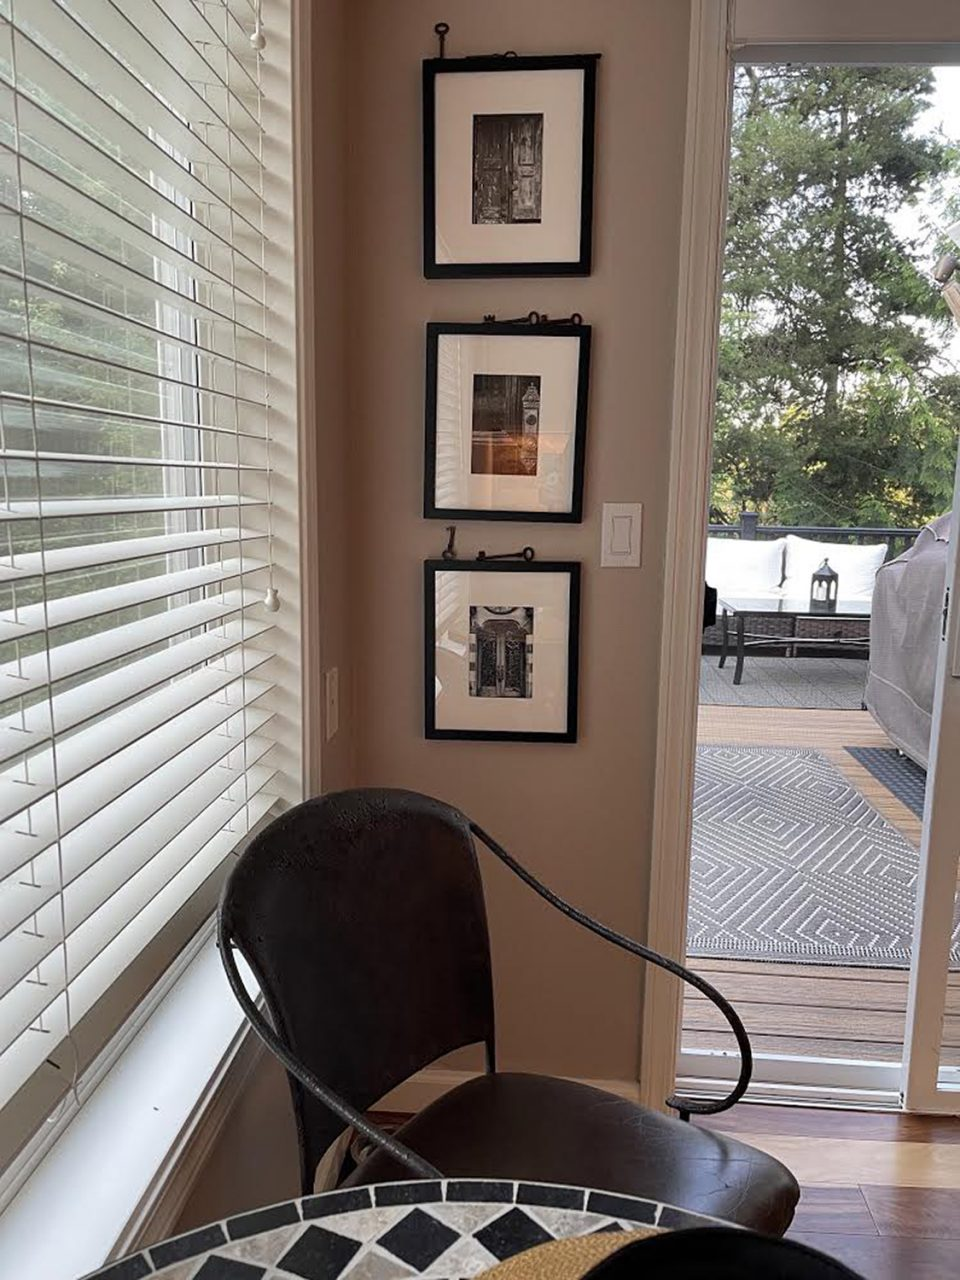 Three small prints by Keith Dotson shown framed on the wall of a home in Portland, Oregon.